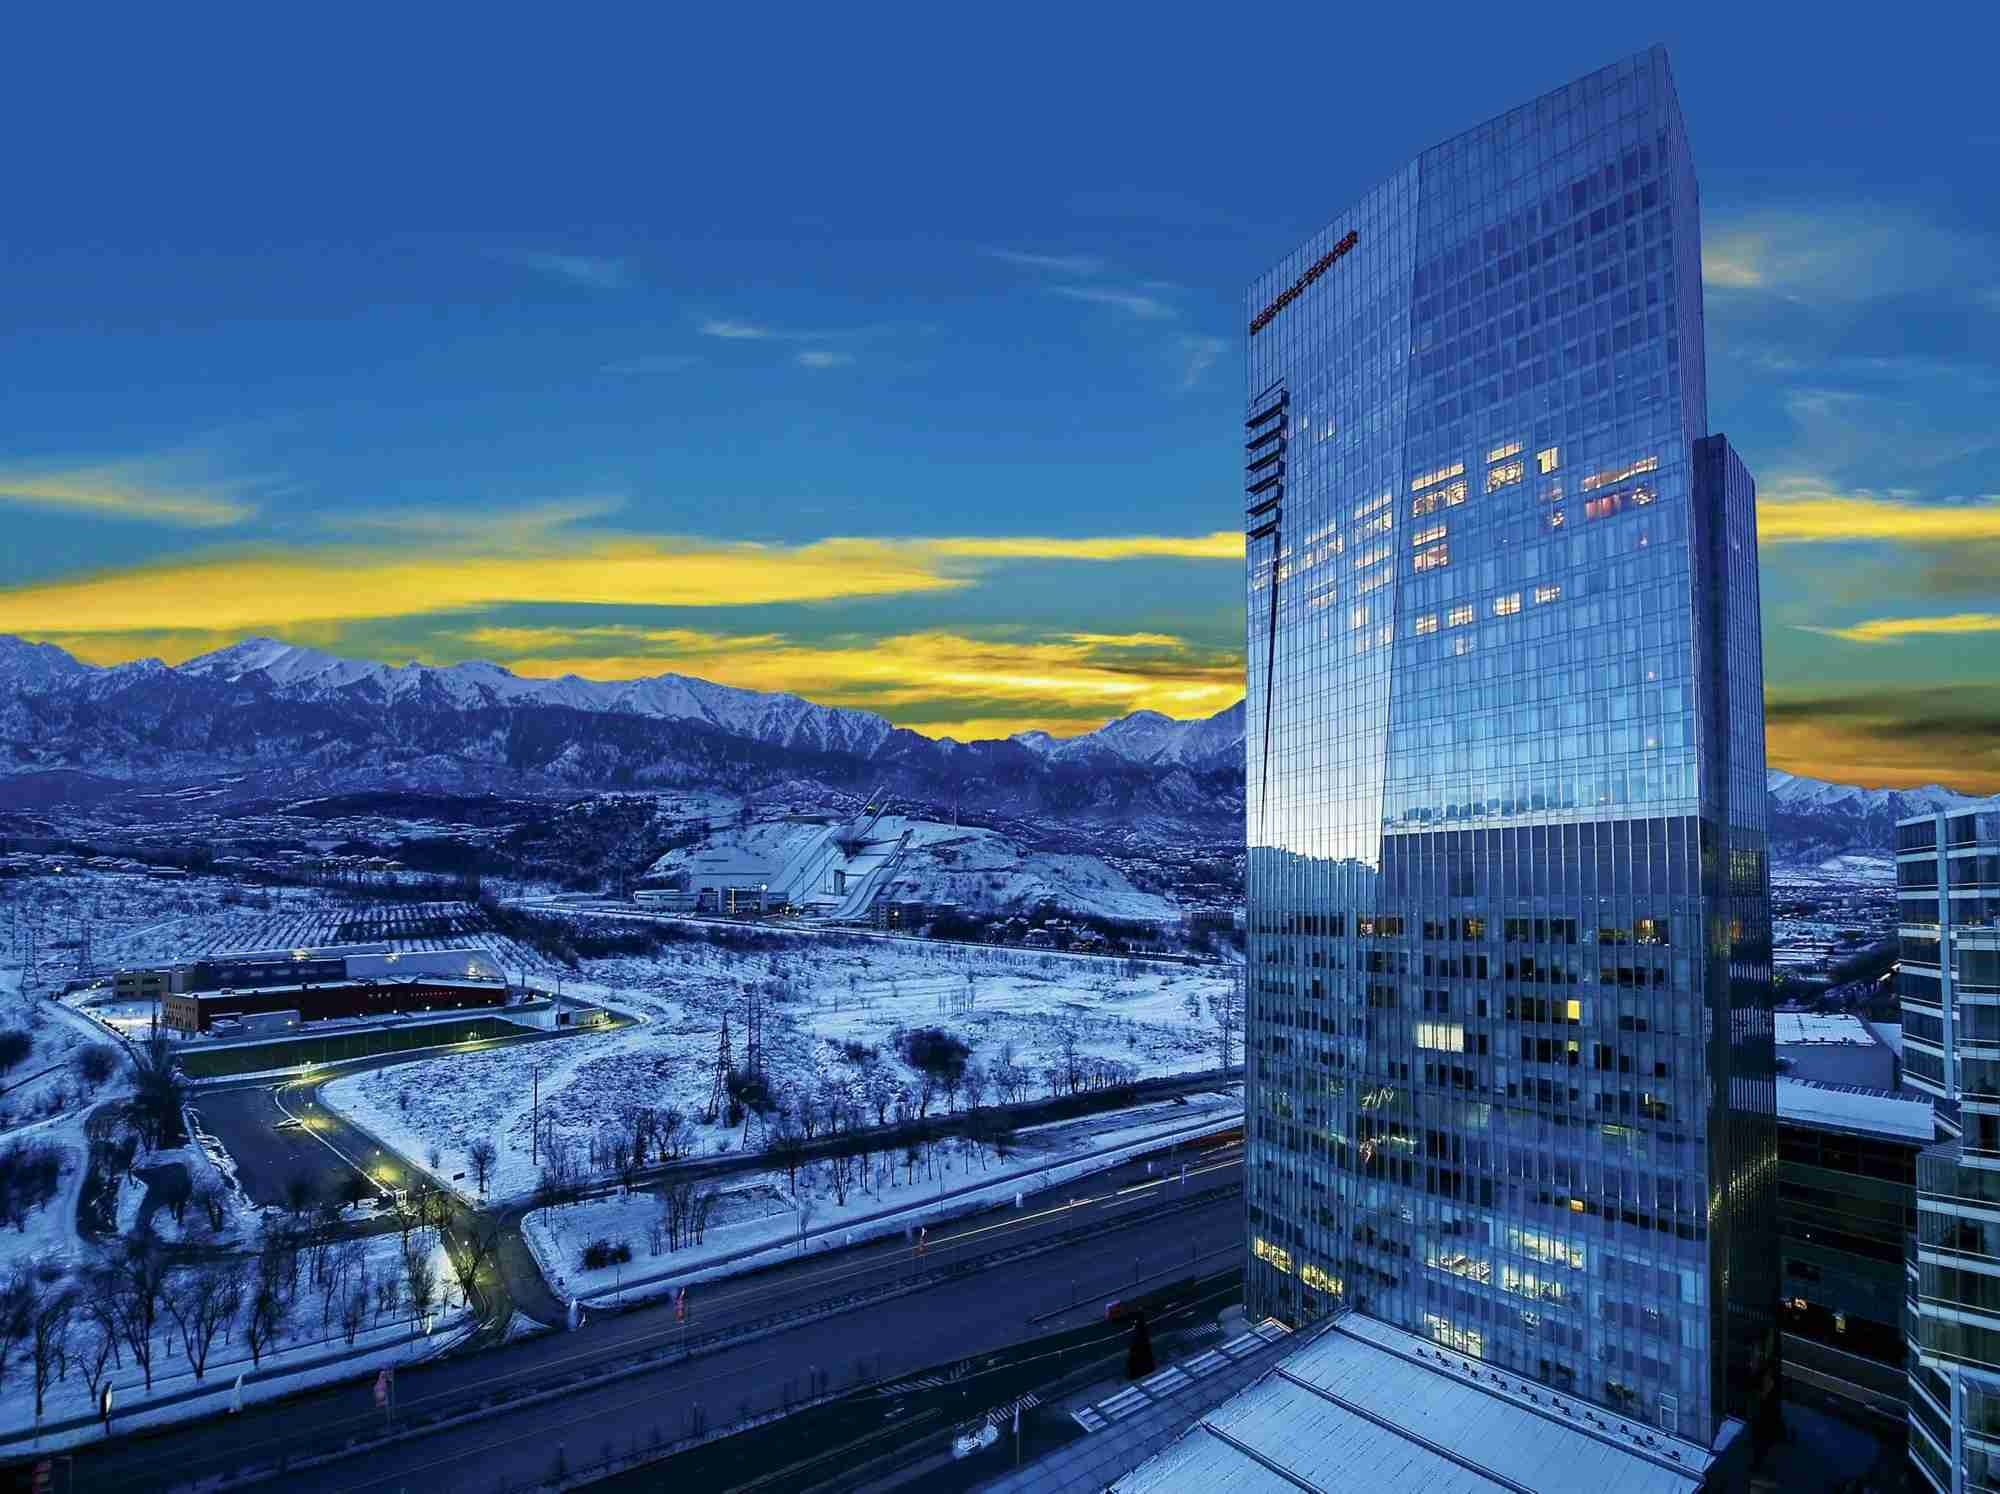 The Ritz Carlton Almaty, with the Tien Shan Mountains and the